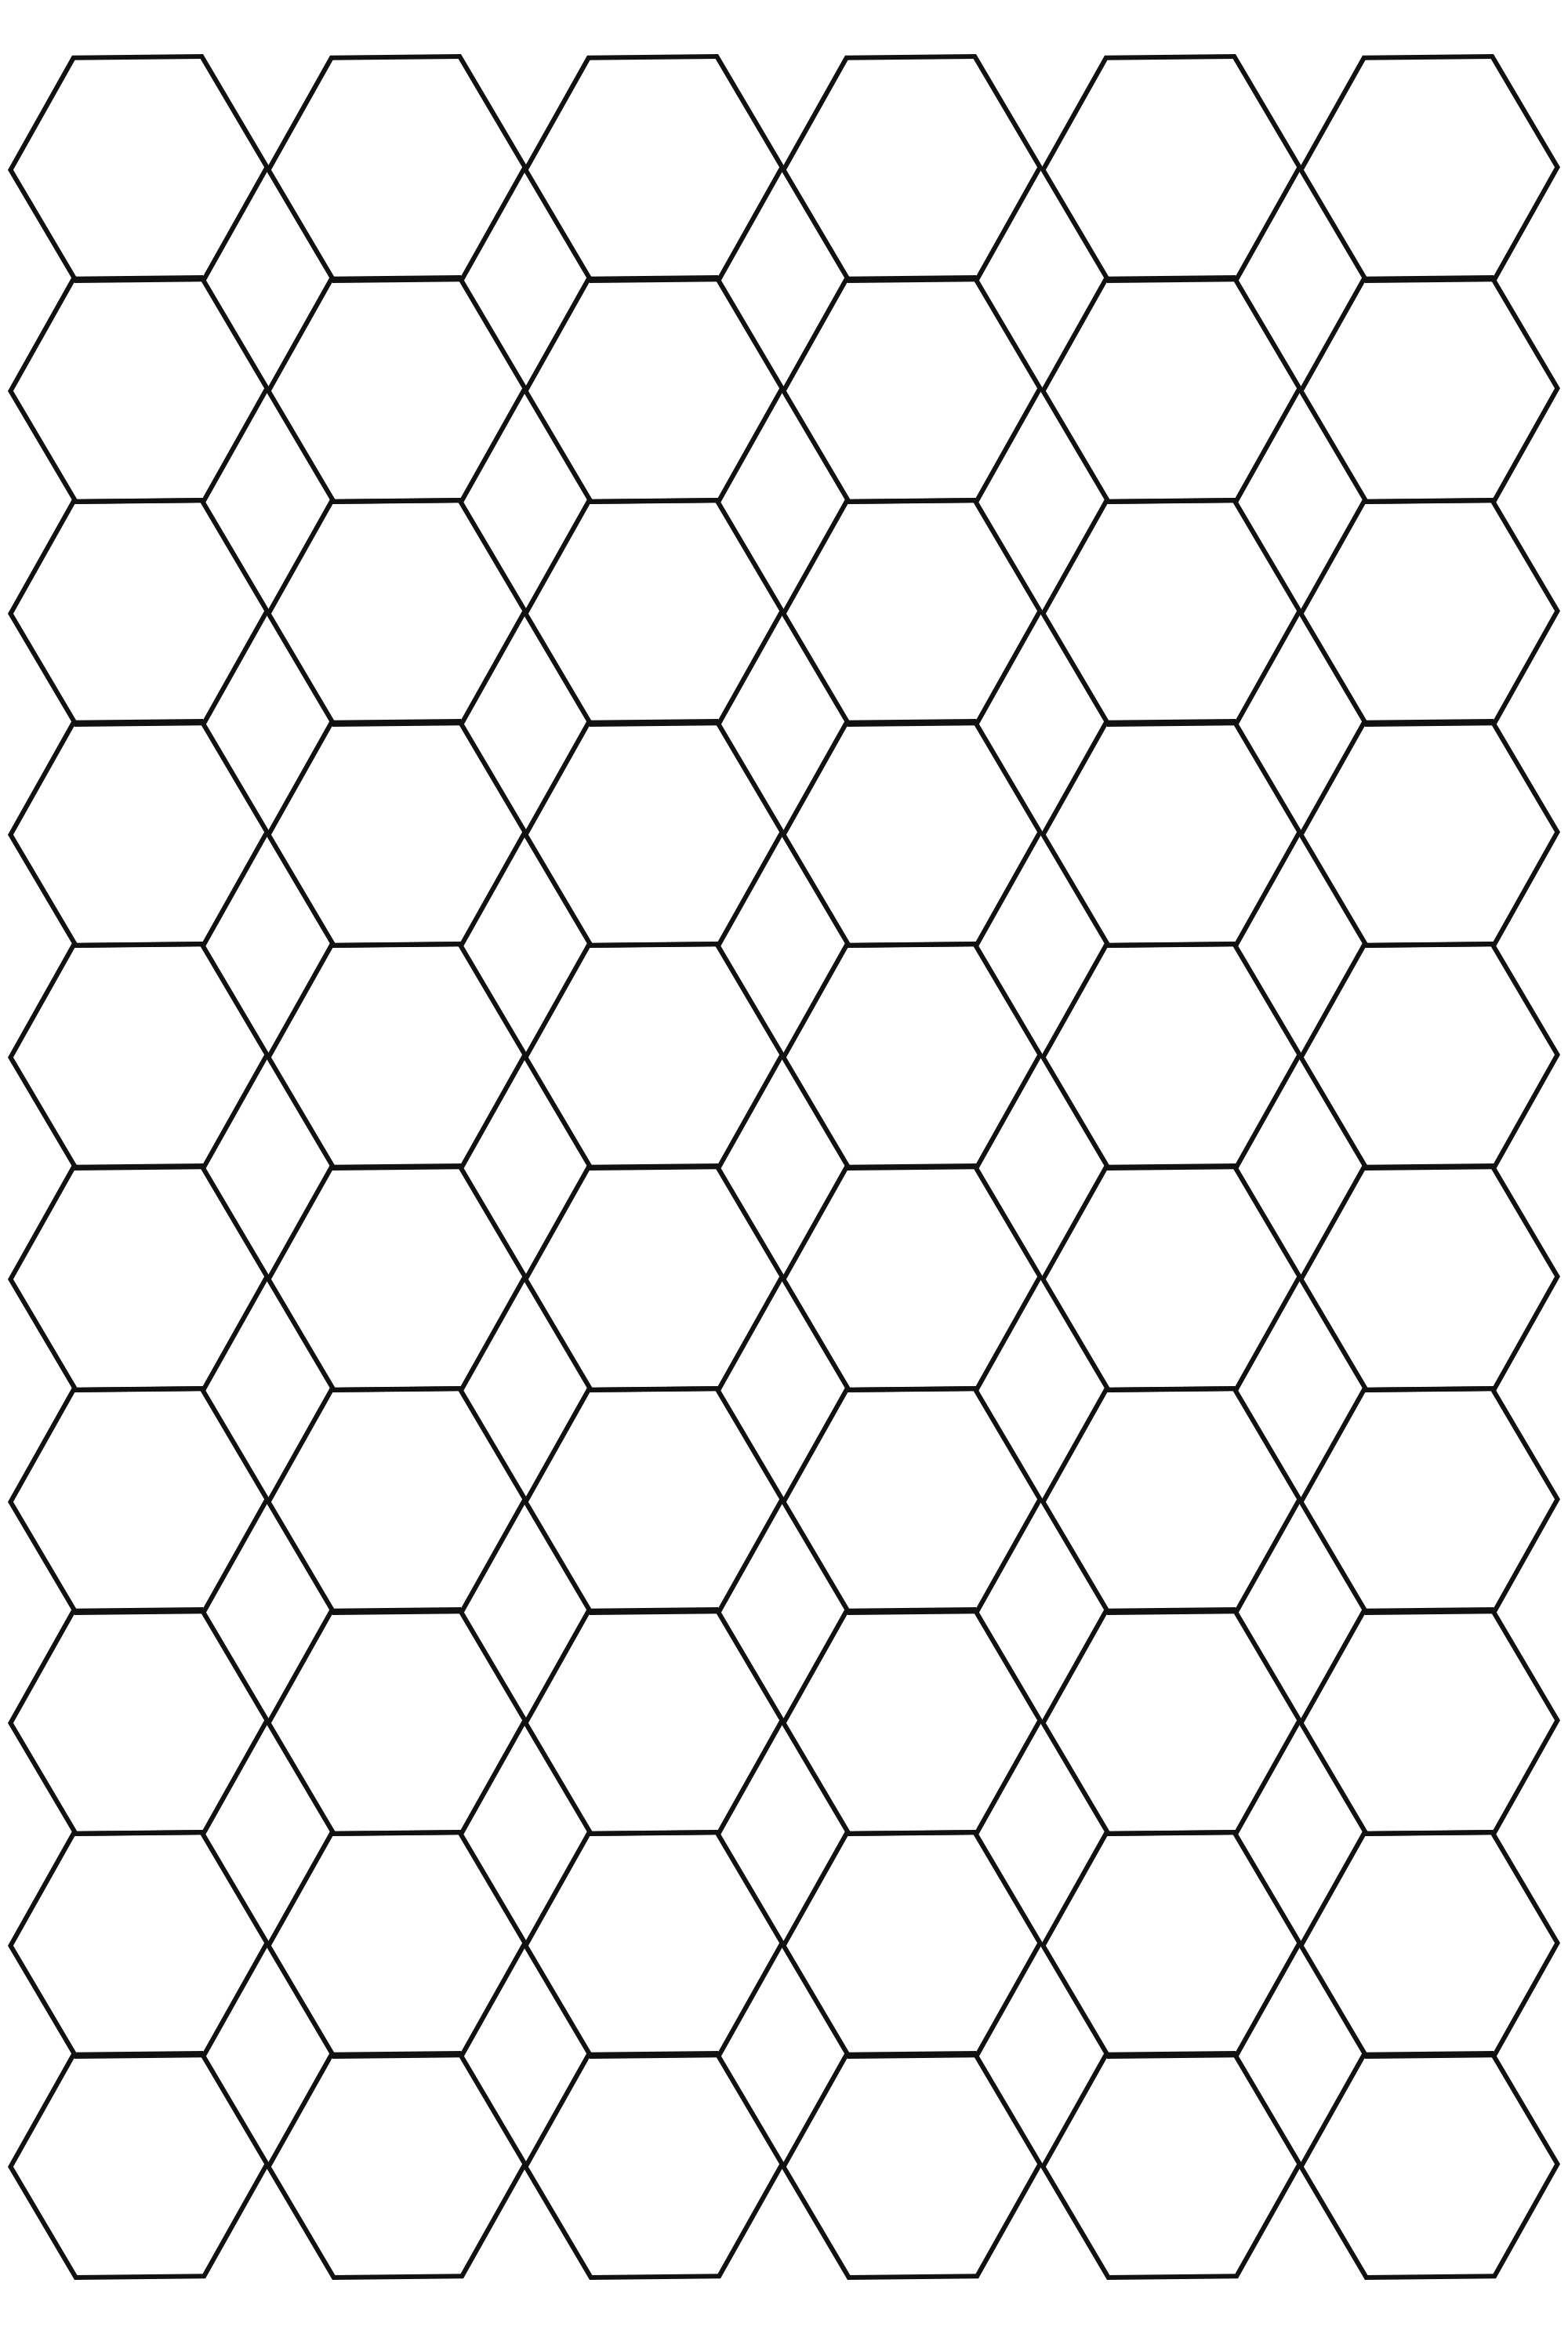 Free Printable Hexagonal Graph Papers Template Free Graph Paper Printable Printable Graph Paper Graph Paper Designs Paper Template Free Printable